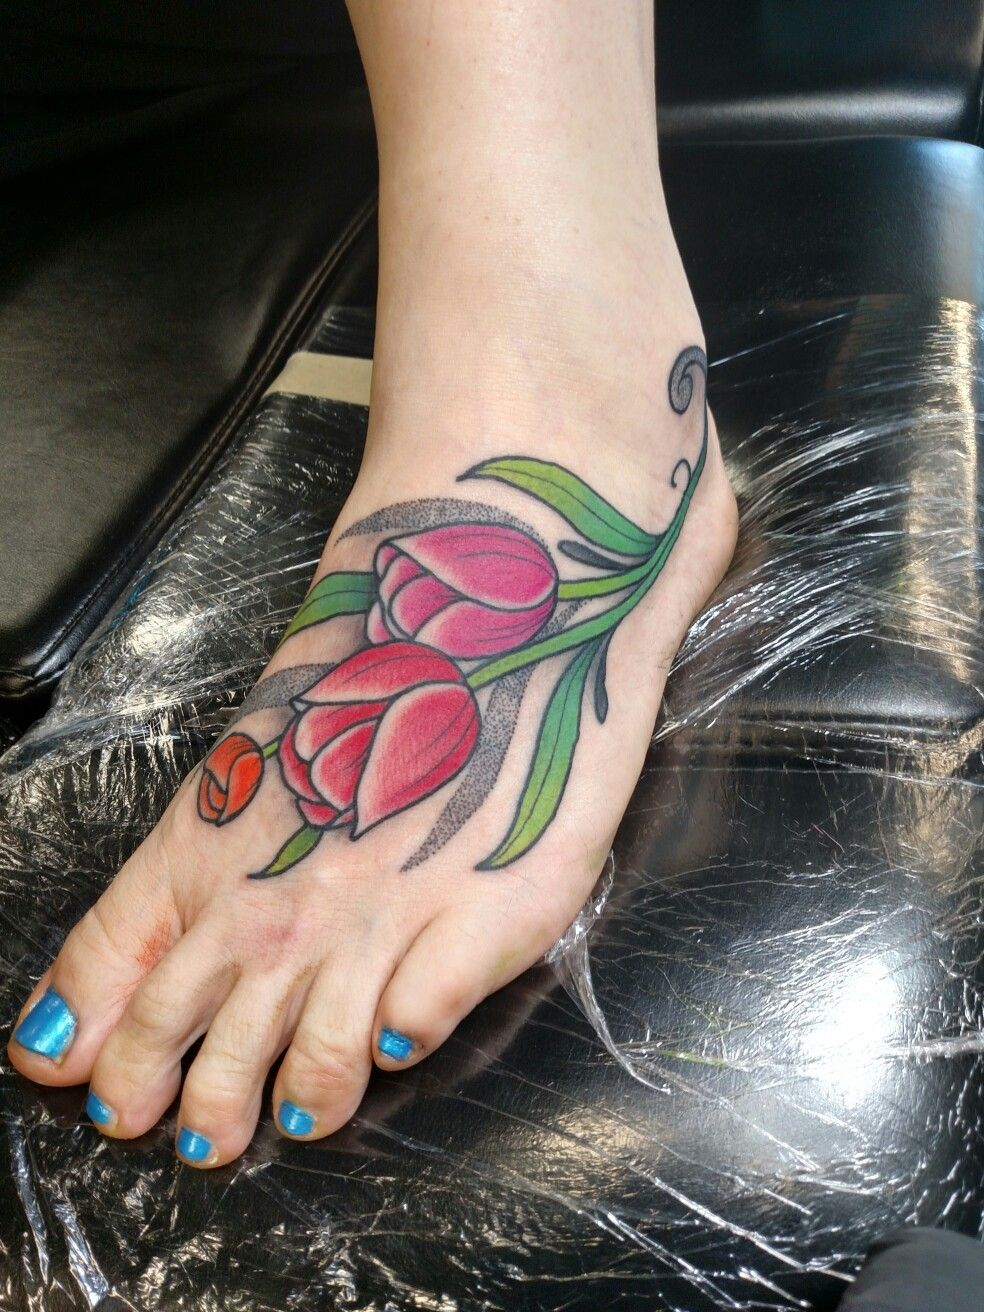 My new tattoo, tulips in memory of my mom. Thank you